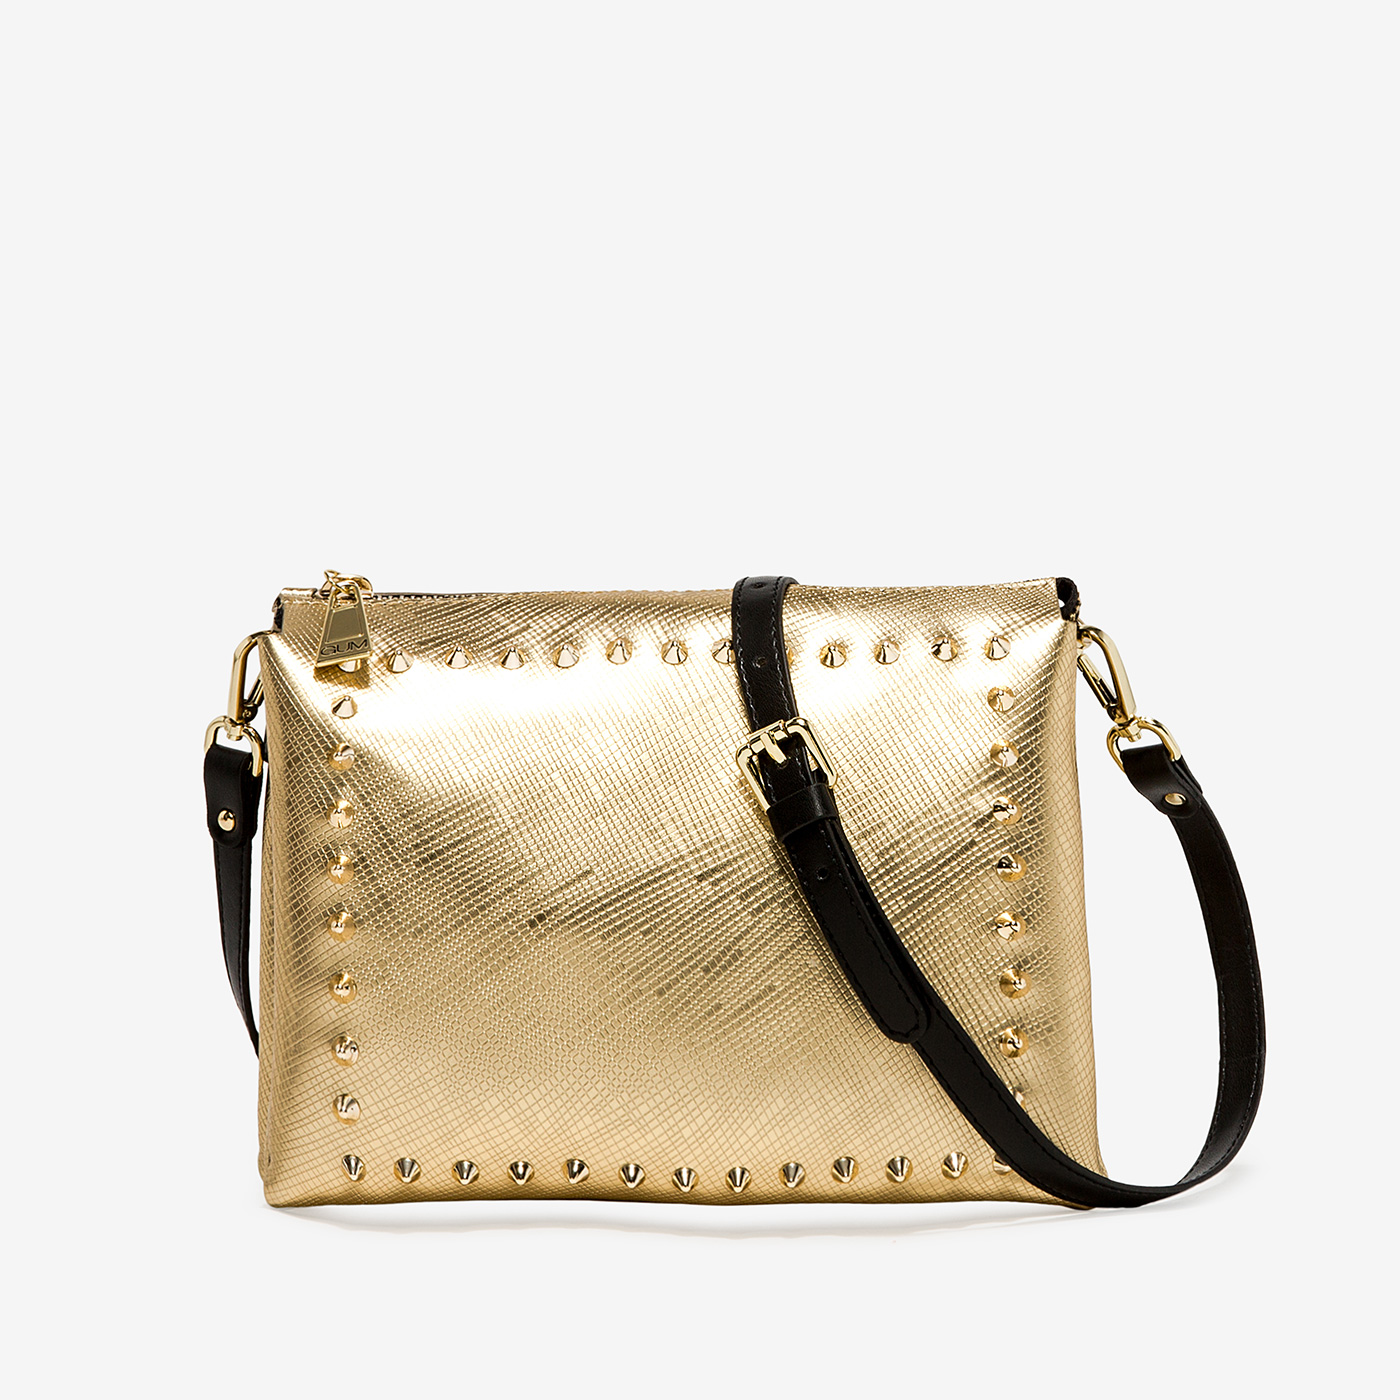 GUM: TWO MEDIUM-SIZE SHOULDER BAG